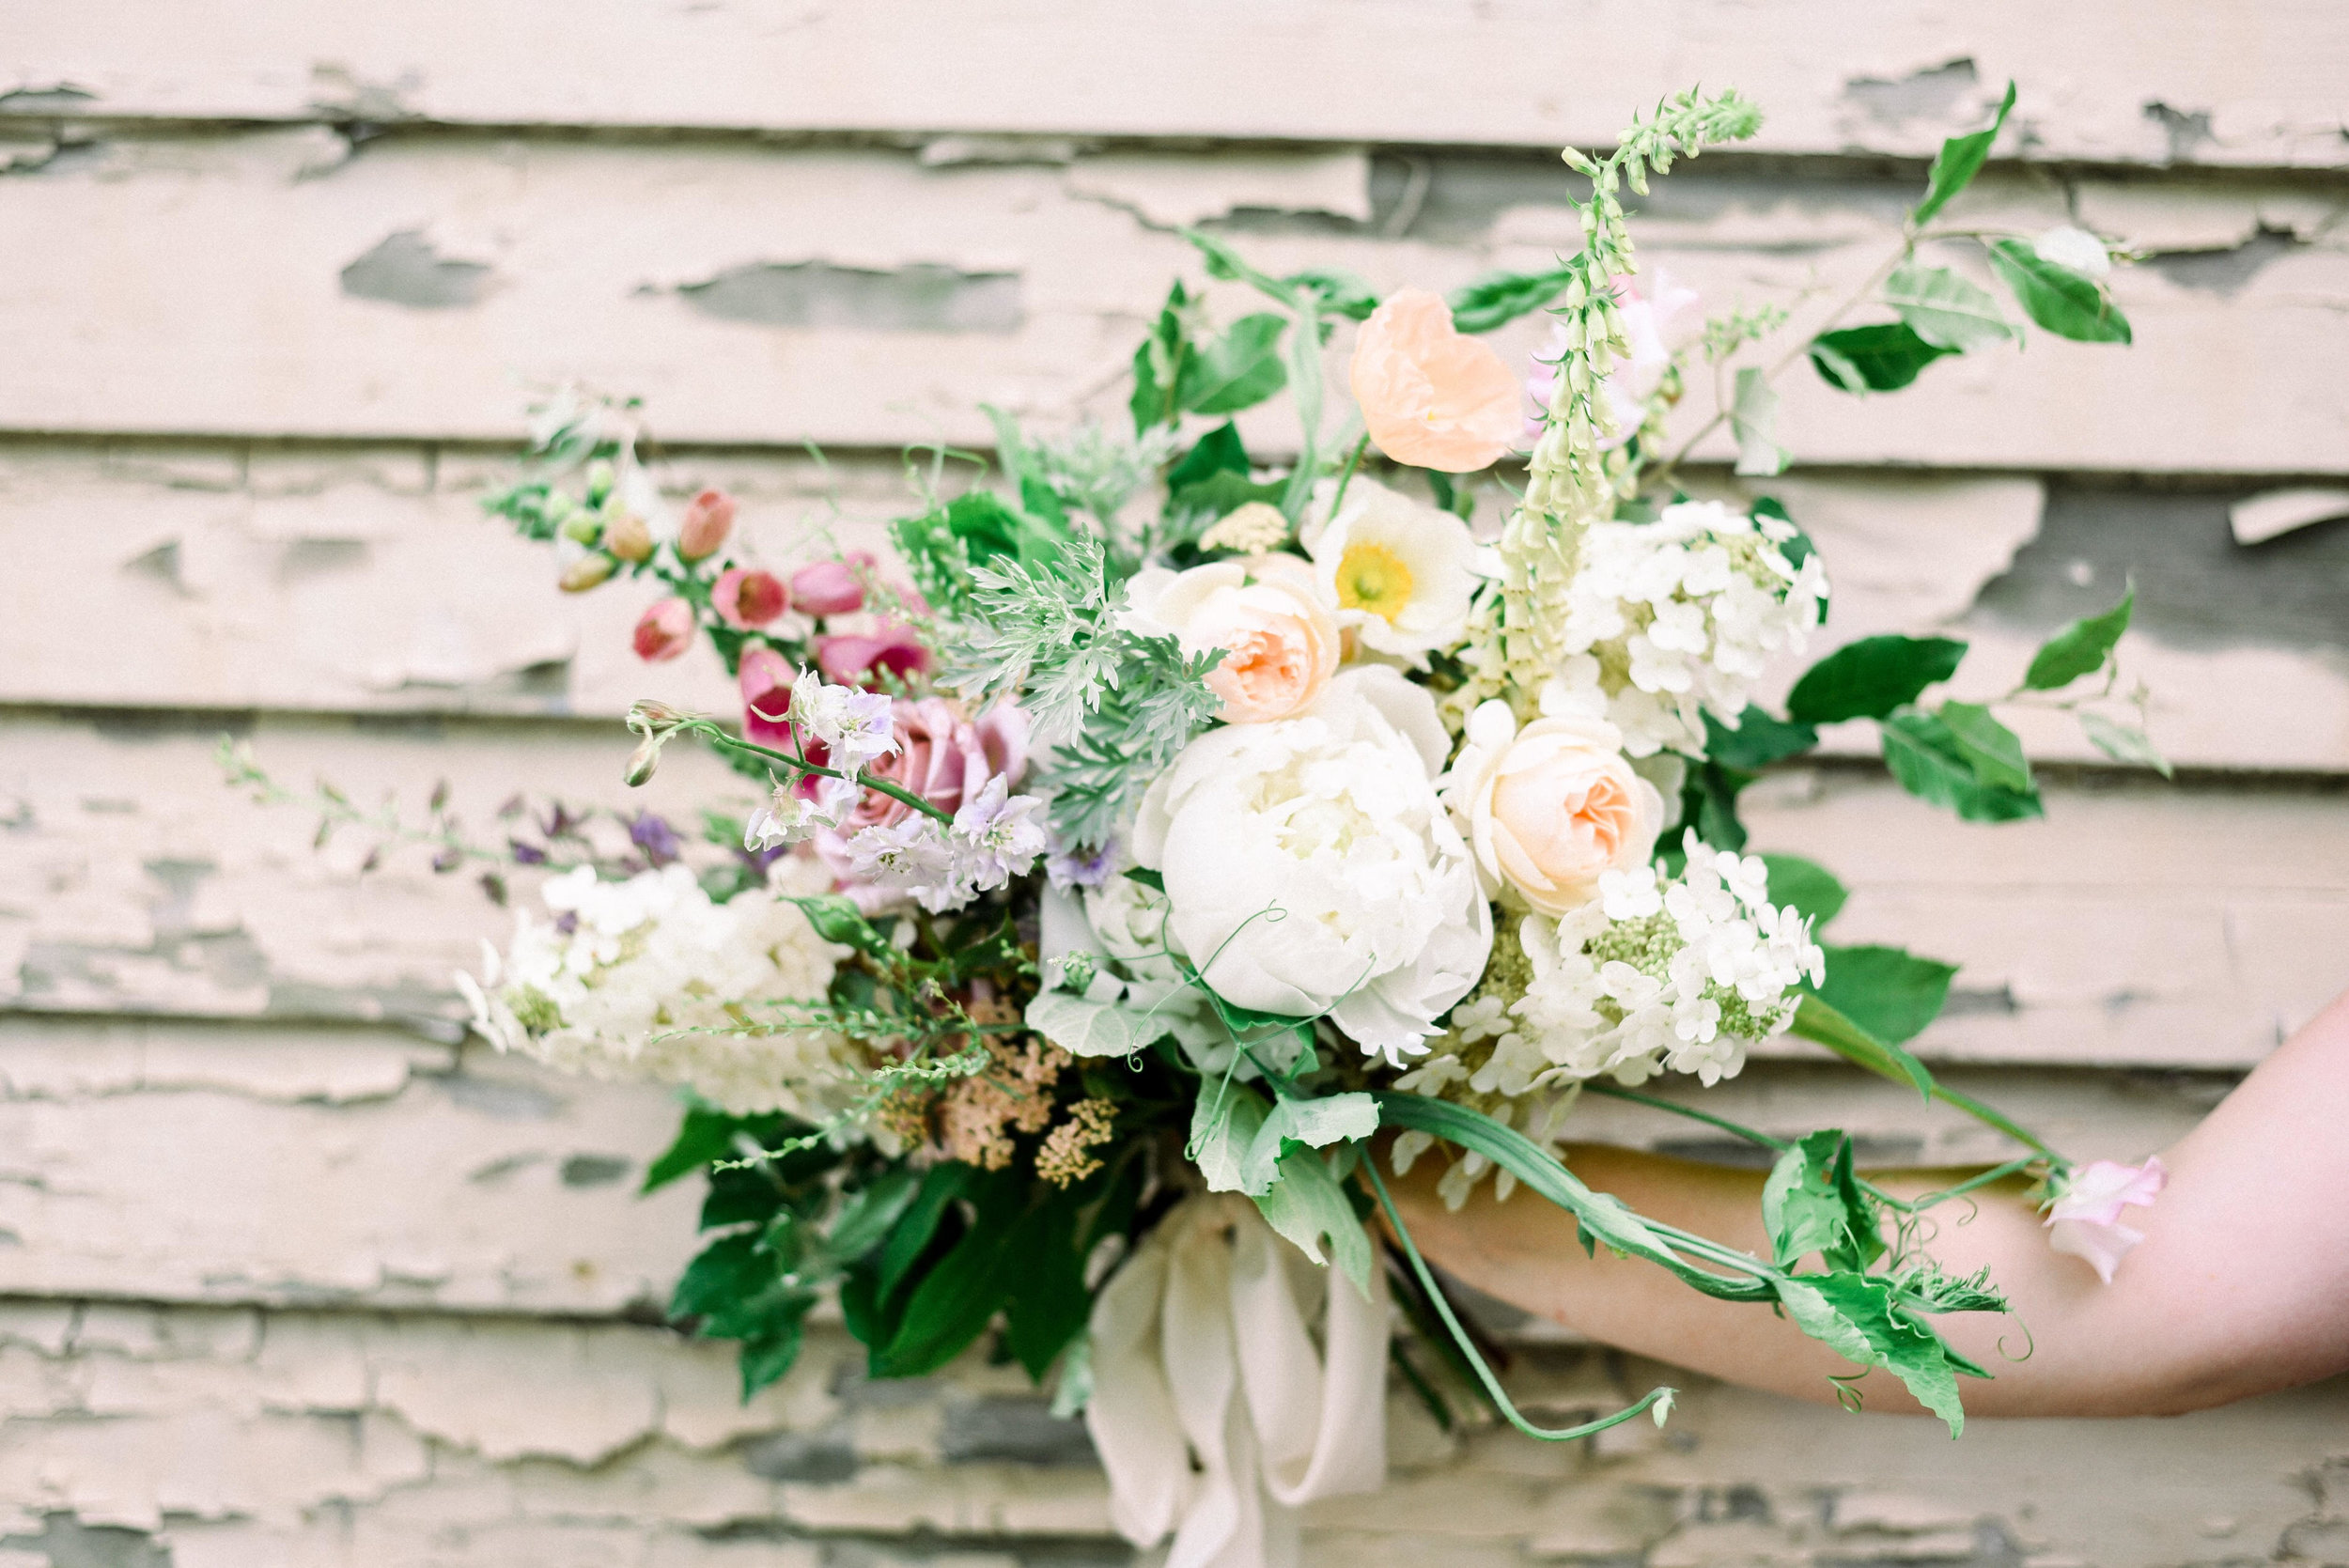 Sweet pea vines were a lovely accent to this mid-June bouquet. Photo by Henry Photographs.